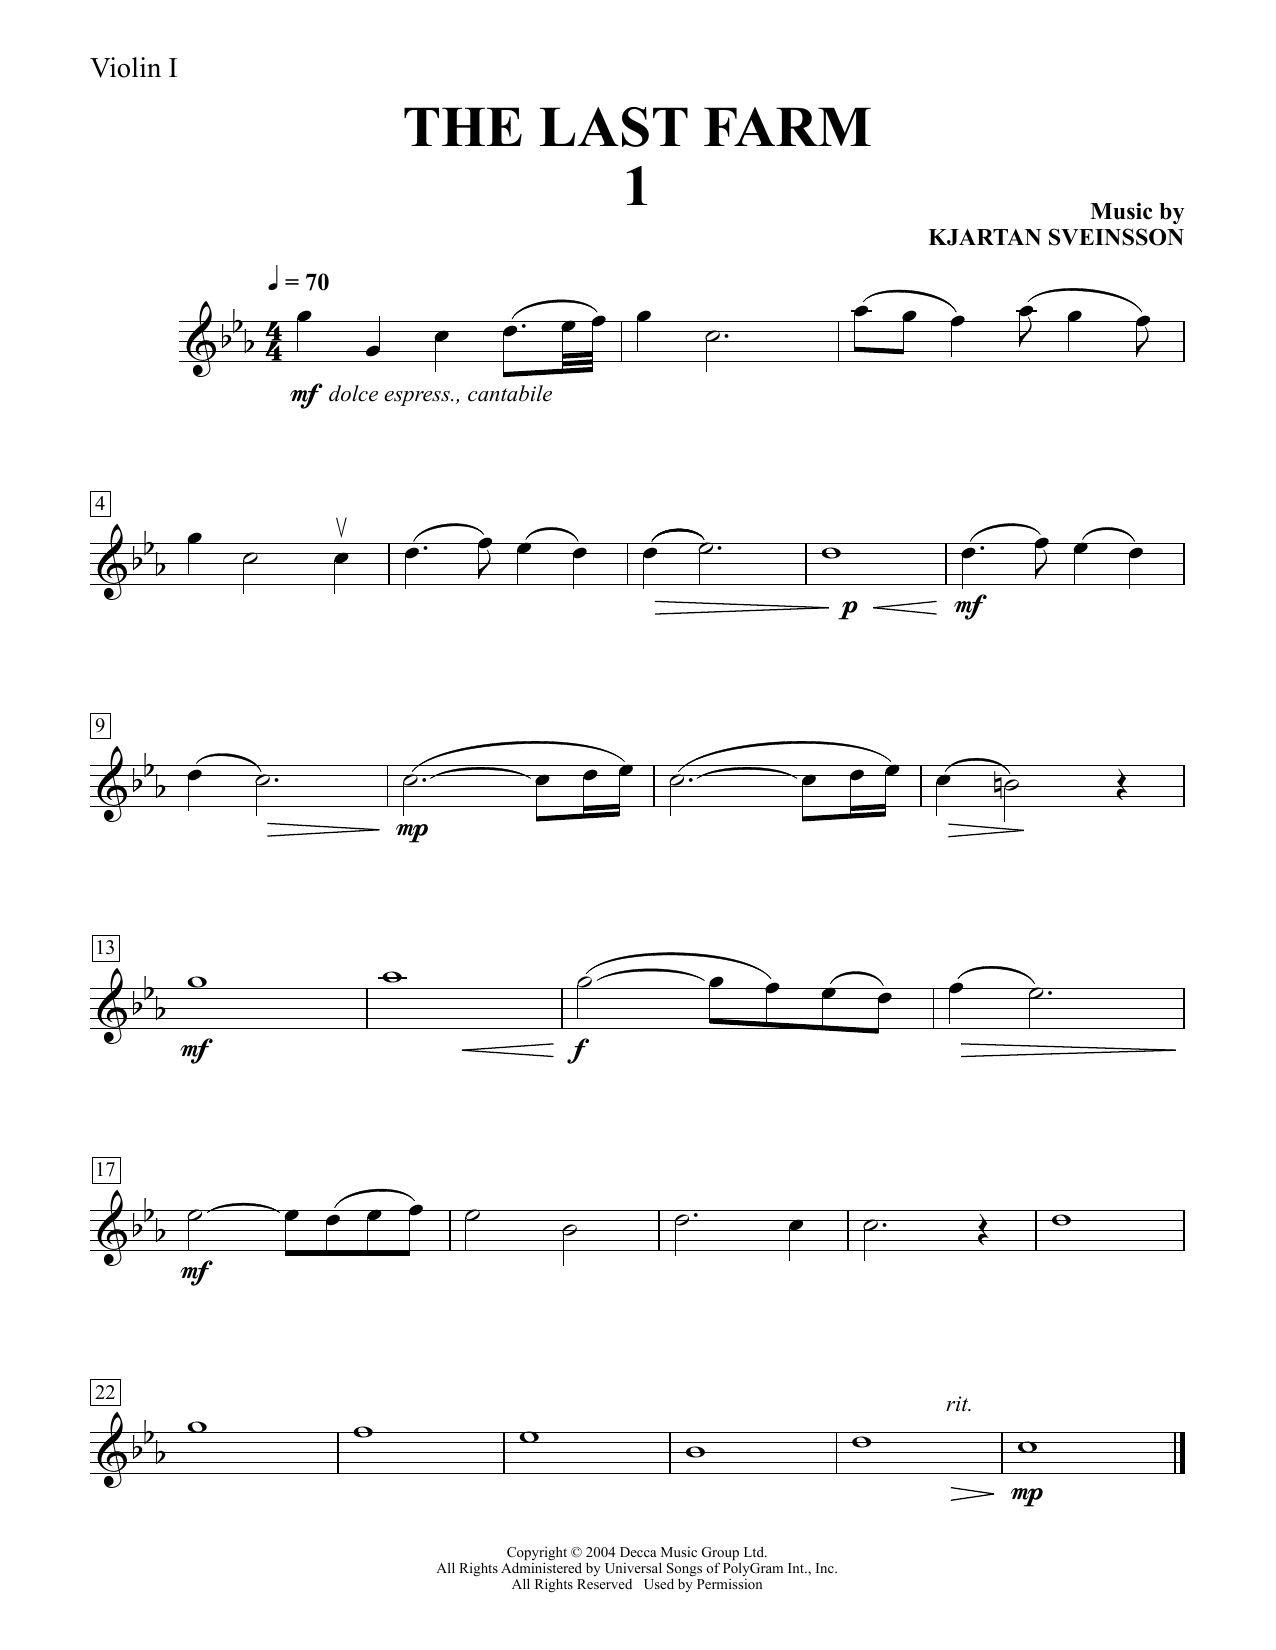 Download Kjartan Sveinsson 'Five String Quartets from The Last Farm - Violin 1' Digital Sheet Music Notes & Chords and start playing in minutes